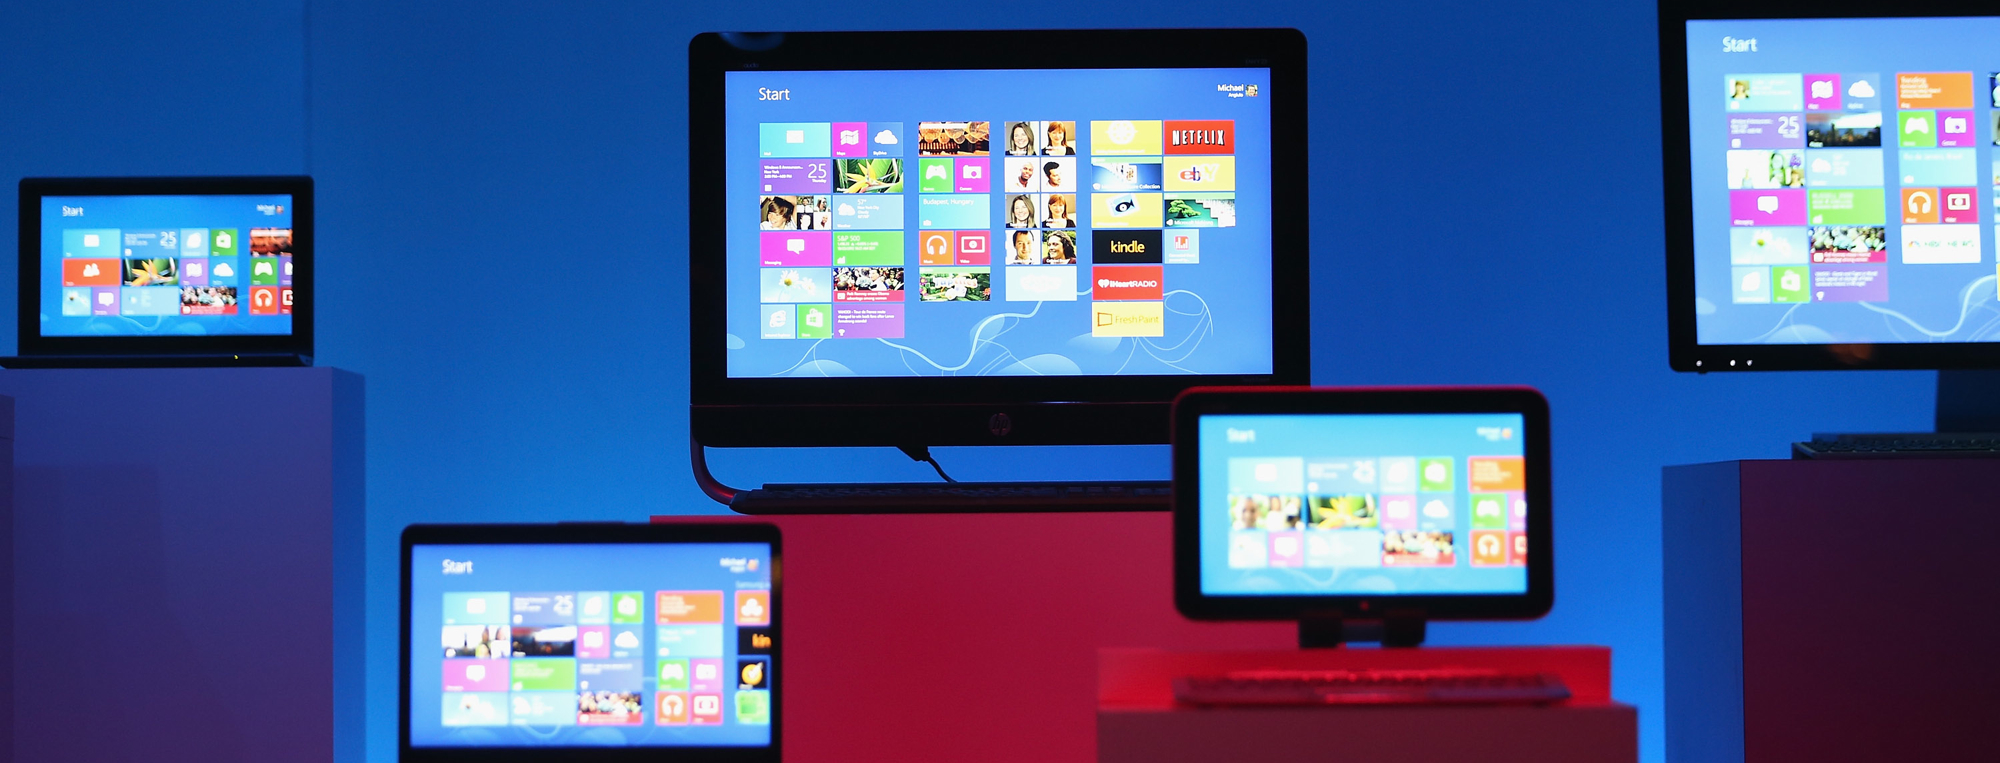 Windows 8.1 Hits 4.30% Market Share, Windows 8 Falls to 6.38%